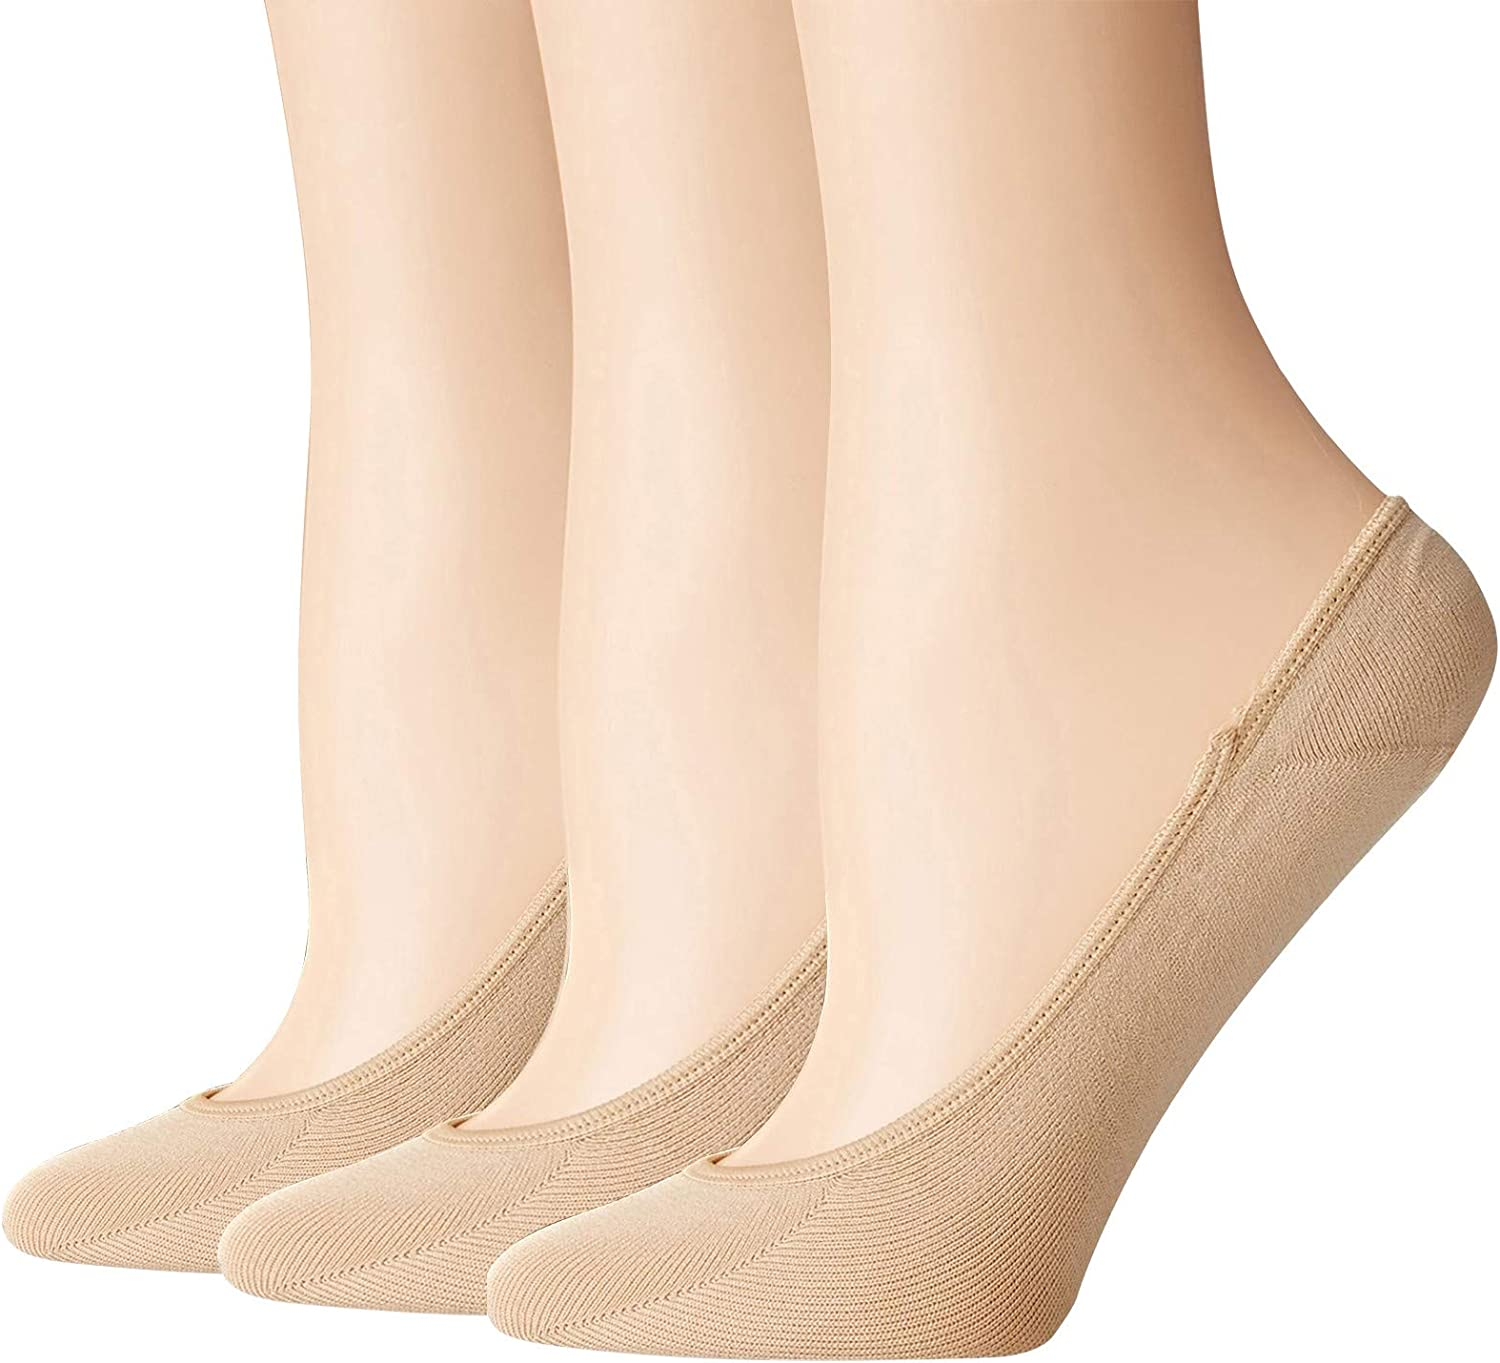 Ashowlaco 3 Pairs Liner Socks for Women No Show Socks, Summer Comfortable Breathable Invisible Ankle Flat Boat Socks